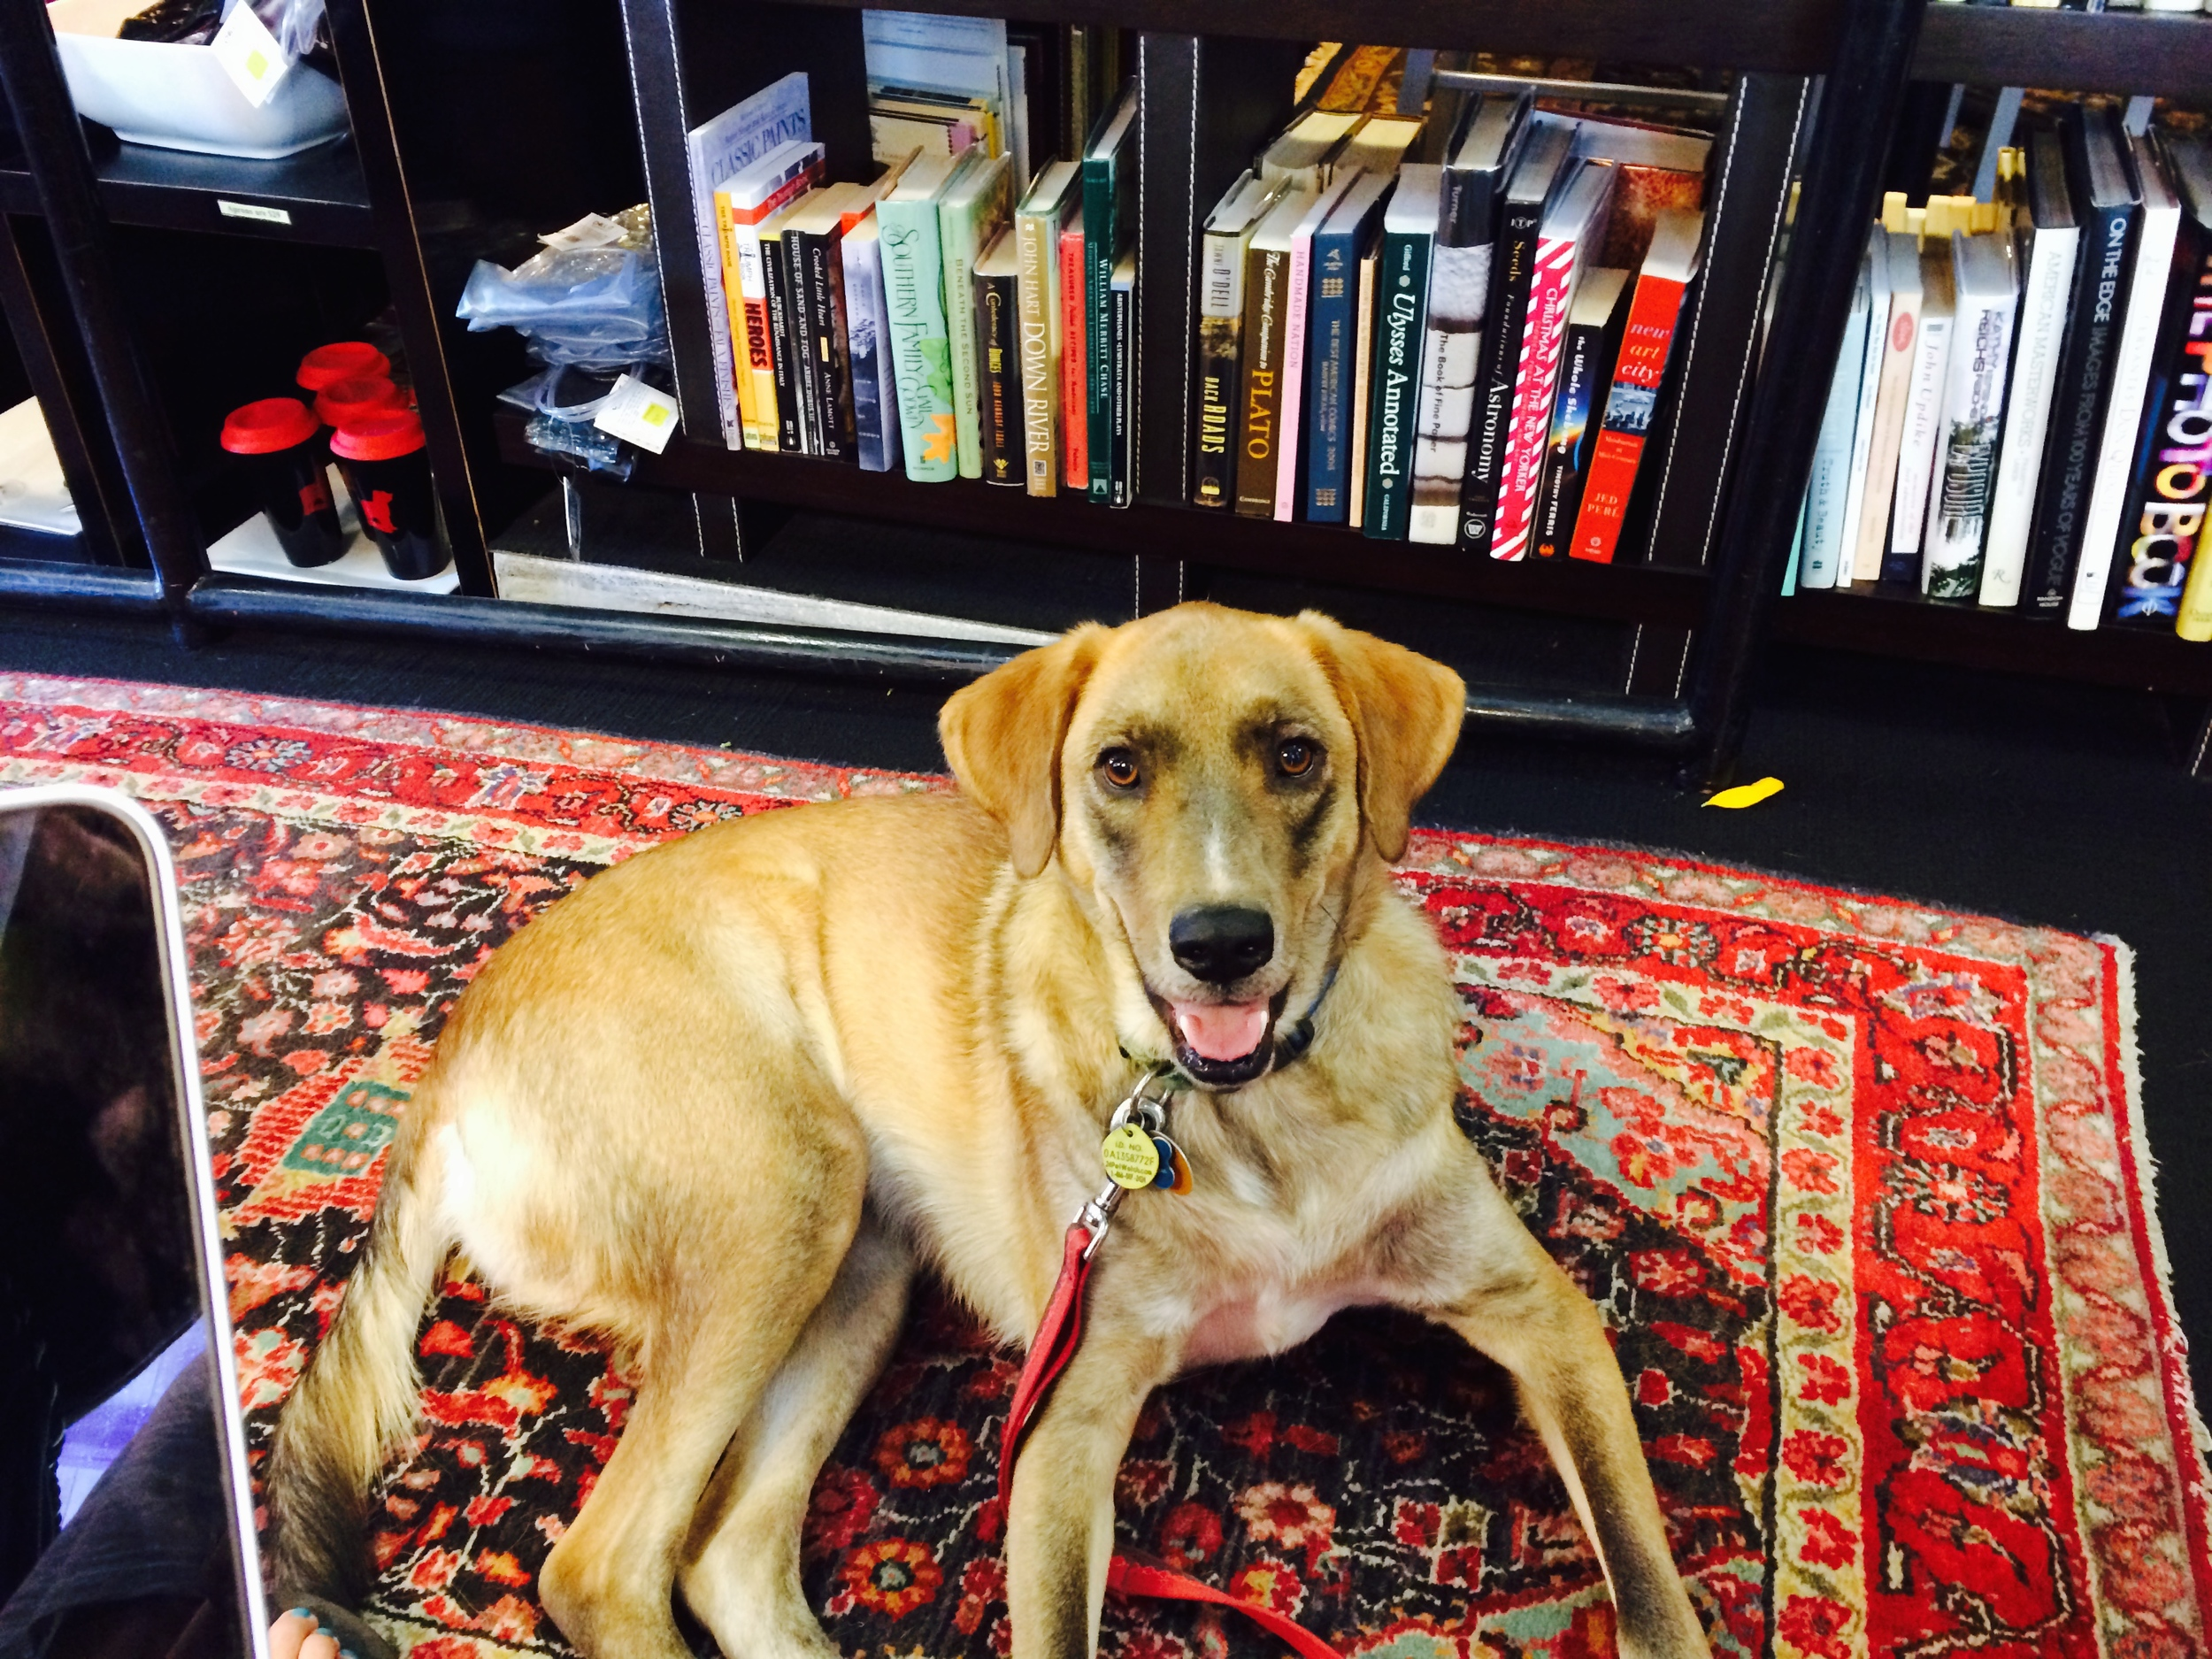 "S ometimes I bring my dog Hugo to counseling sessions. Here are the top 10 reasons why:     *He loves you. How can you not feel better?    *He's still a bit of a puppy (in a big-dog body), and his playfulness is a great reminder that we all need to take ourselves less seriously sometimes.    *Having an animal in the room is a connection to nature, to our deeper, primal, ""wild"" selves, the part of us that isn't staring at a glowing screen or doing 15 tasks at once.    *Petting a dog lowers blood pressure and triggers humans' relaxation response.    *He's an icebreaker. Sometimes walking into a counseling session for the first time and sitting across from a therapist can be a bit intimidating, but Hugo naturally breaks down any tension and increases connection from the get-go.    *Hugo provides the perfect opportunity for me to illustrate setting healthy boundaries with others (i.e. when I have to tell him ""No"" and ""Stop that"" as he pulls tissues out of the trash or tries to sneak up onto the couch). There are many parallels between interacting with dogs and interacting with people (just ask the Dog Whisperer!).     *He is a wonderful example of how anyone can be lovable, even with imperfections. (Yep, he sheds, and farts, and squirms at the wrong times, but he is adorable just as he is.    *He is a natural clock, getting up to stretch just as it's time for the session to start winding down.     *He forces me to step outside the office periodically, to soak up a little sunshine (while he empties his bladder) and return to the next session refreshed.    *He doesn't worry about the future, and doesn't agonize about the past. He just is what he is, enjoying his doggy-ness. A monk I once knew said, ""dogs illustrate the doggy nature of God."" He's a reminder to just BE. Woof!"